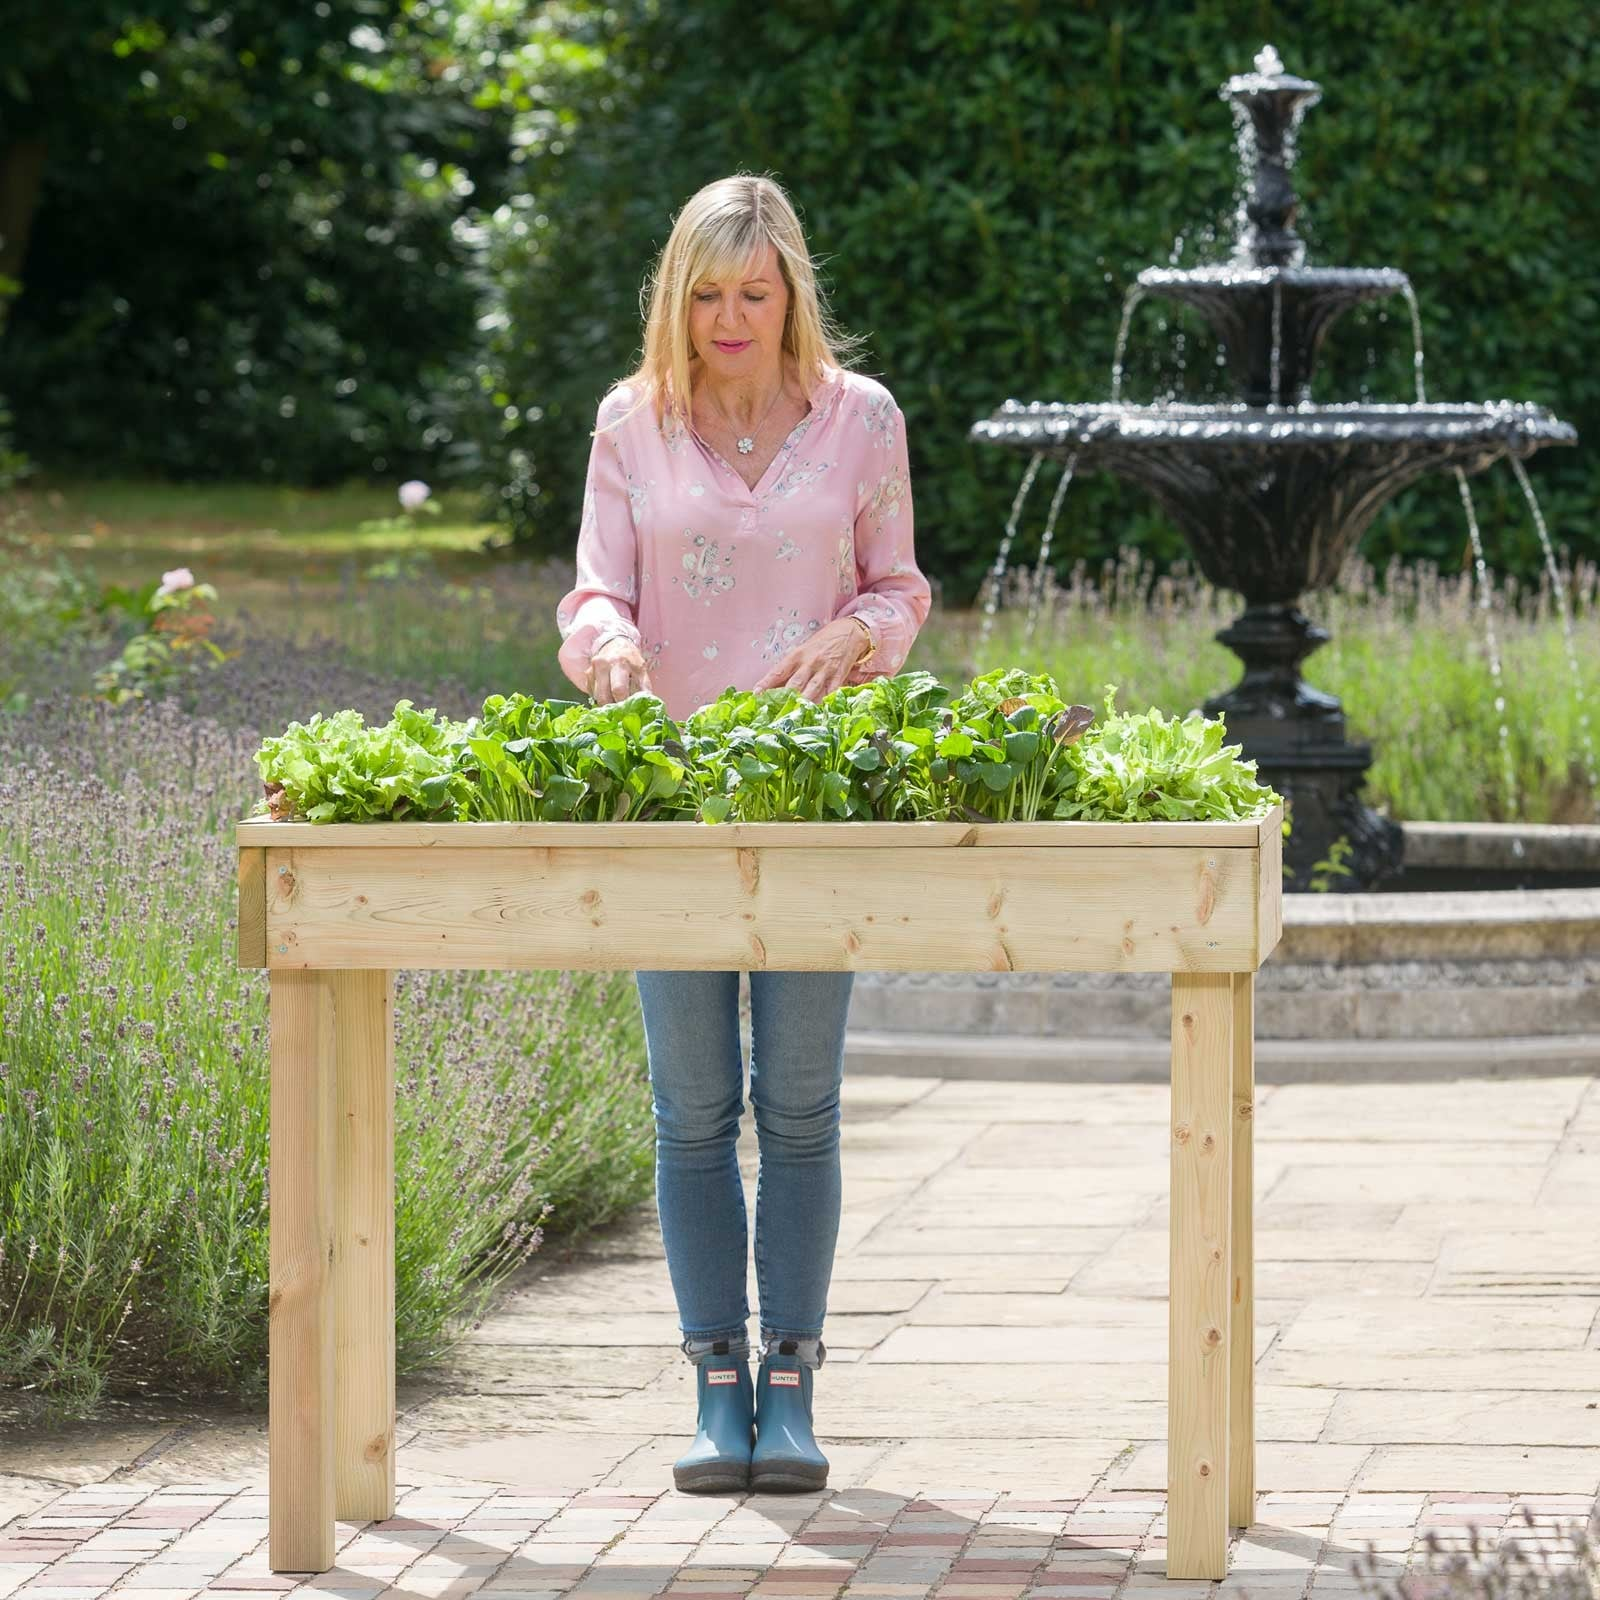 Standard Wooden Raised Bed Tables Raised Bed Gardening